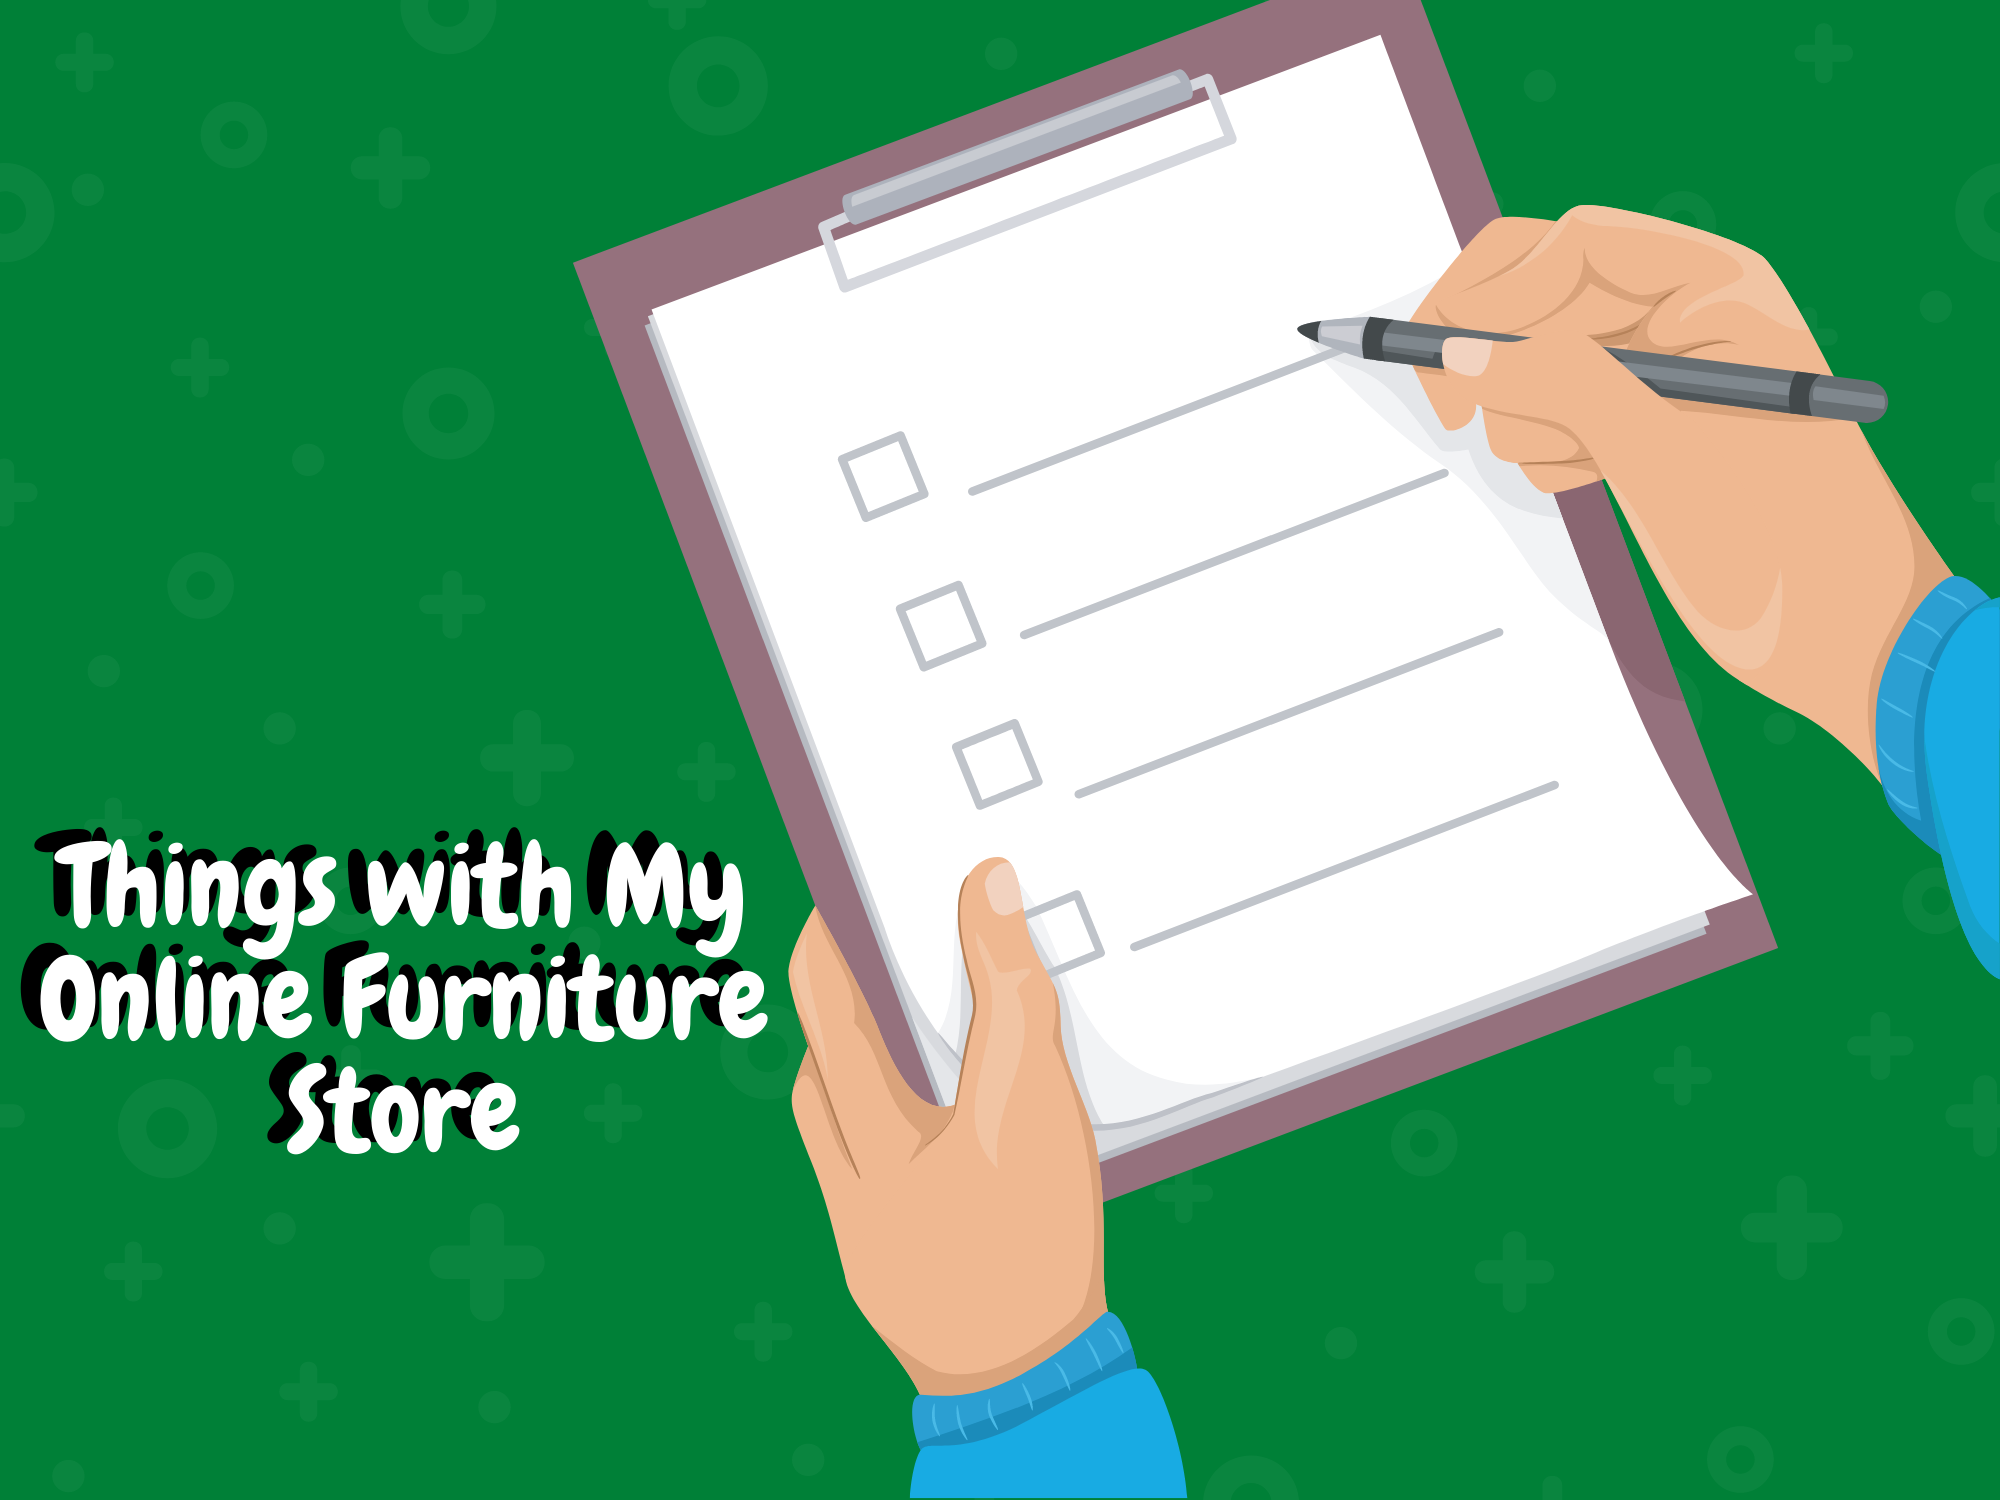 Things-with-My-Online-Furniture-Store